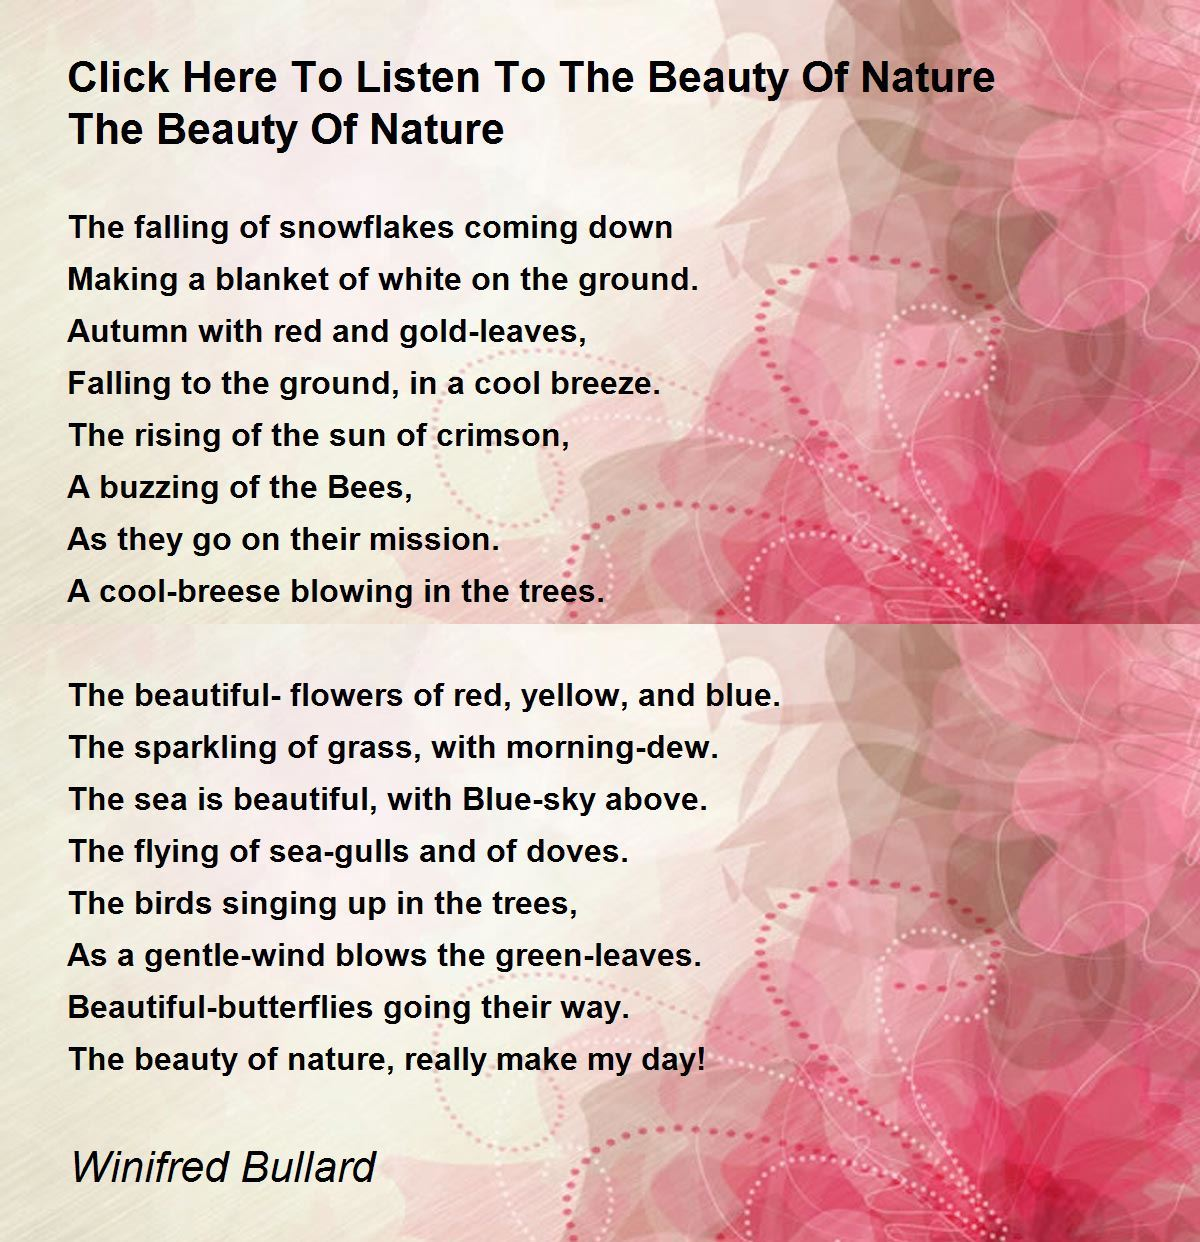 Click Here To Listen The Beauty Of Nature Poem By Winifred Bullard